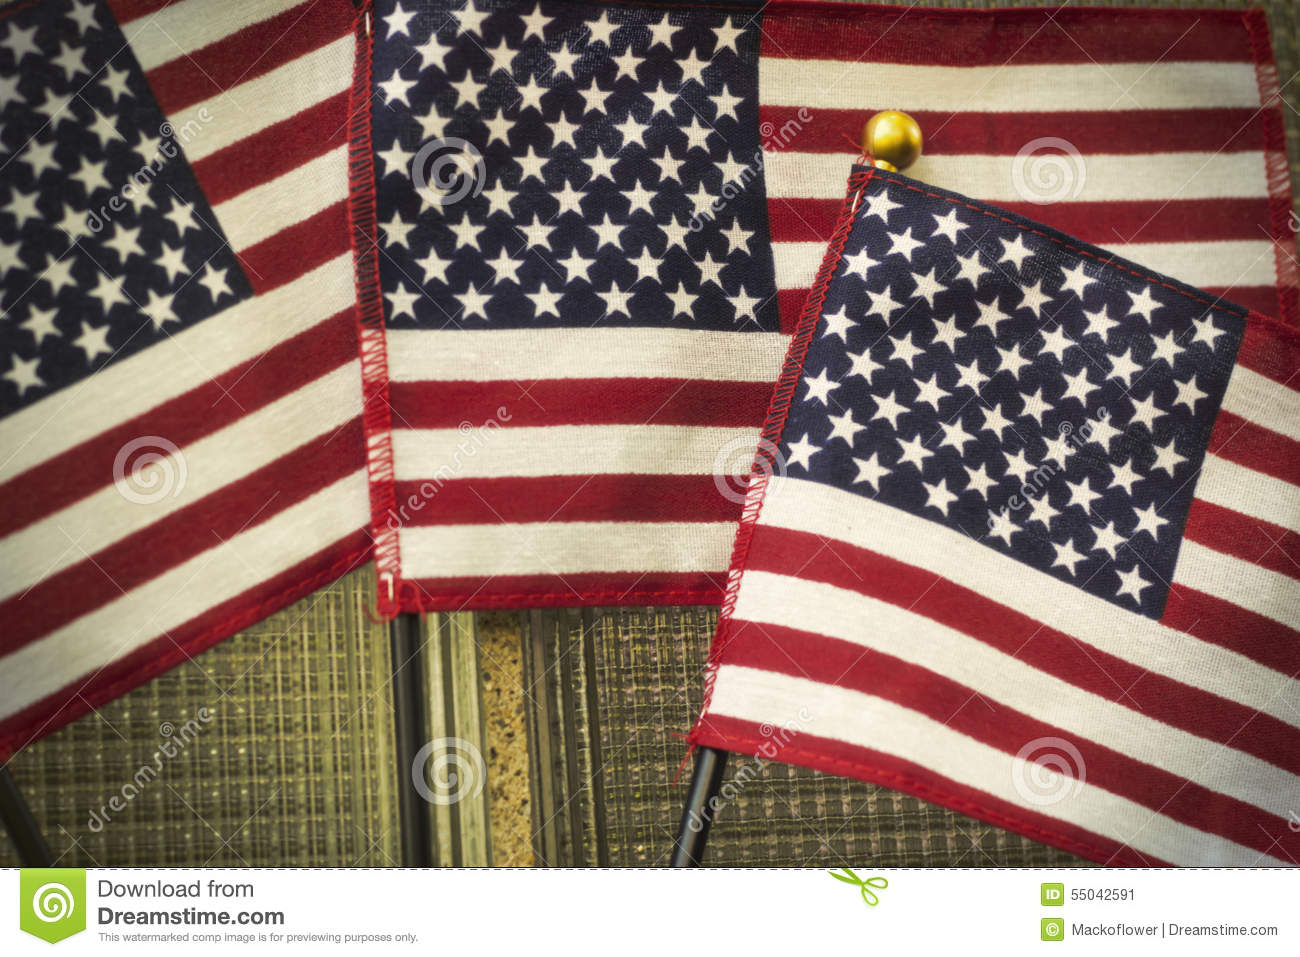 united states and patriotism The notion that patriotism and racism are synonymous was used  cases against  83,000 muslims entering or living in the united states.